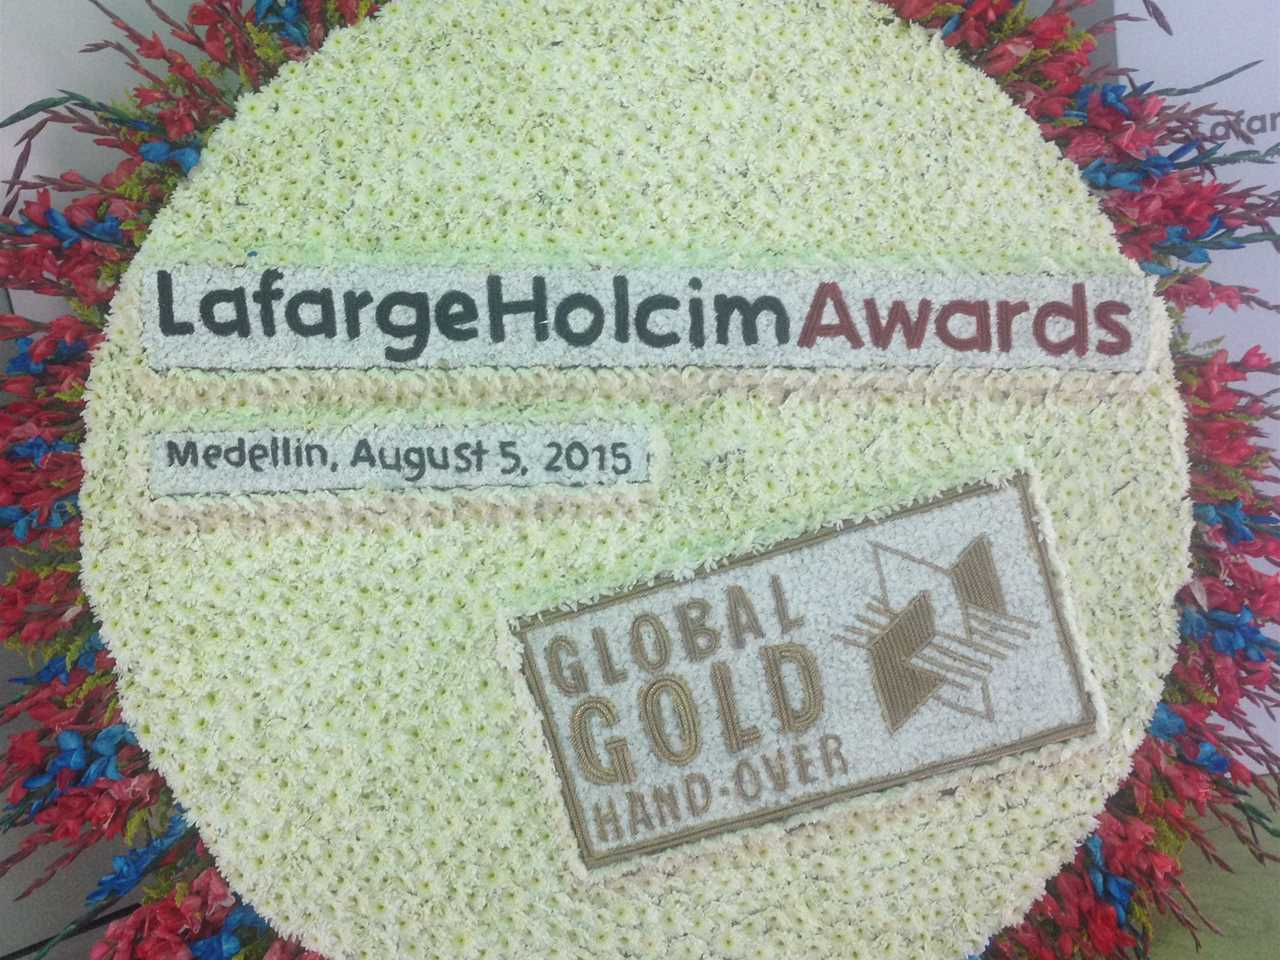 Global Gold Awards 2015 prize handover